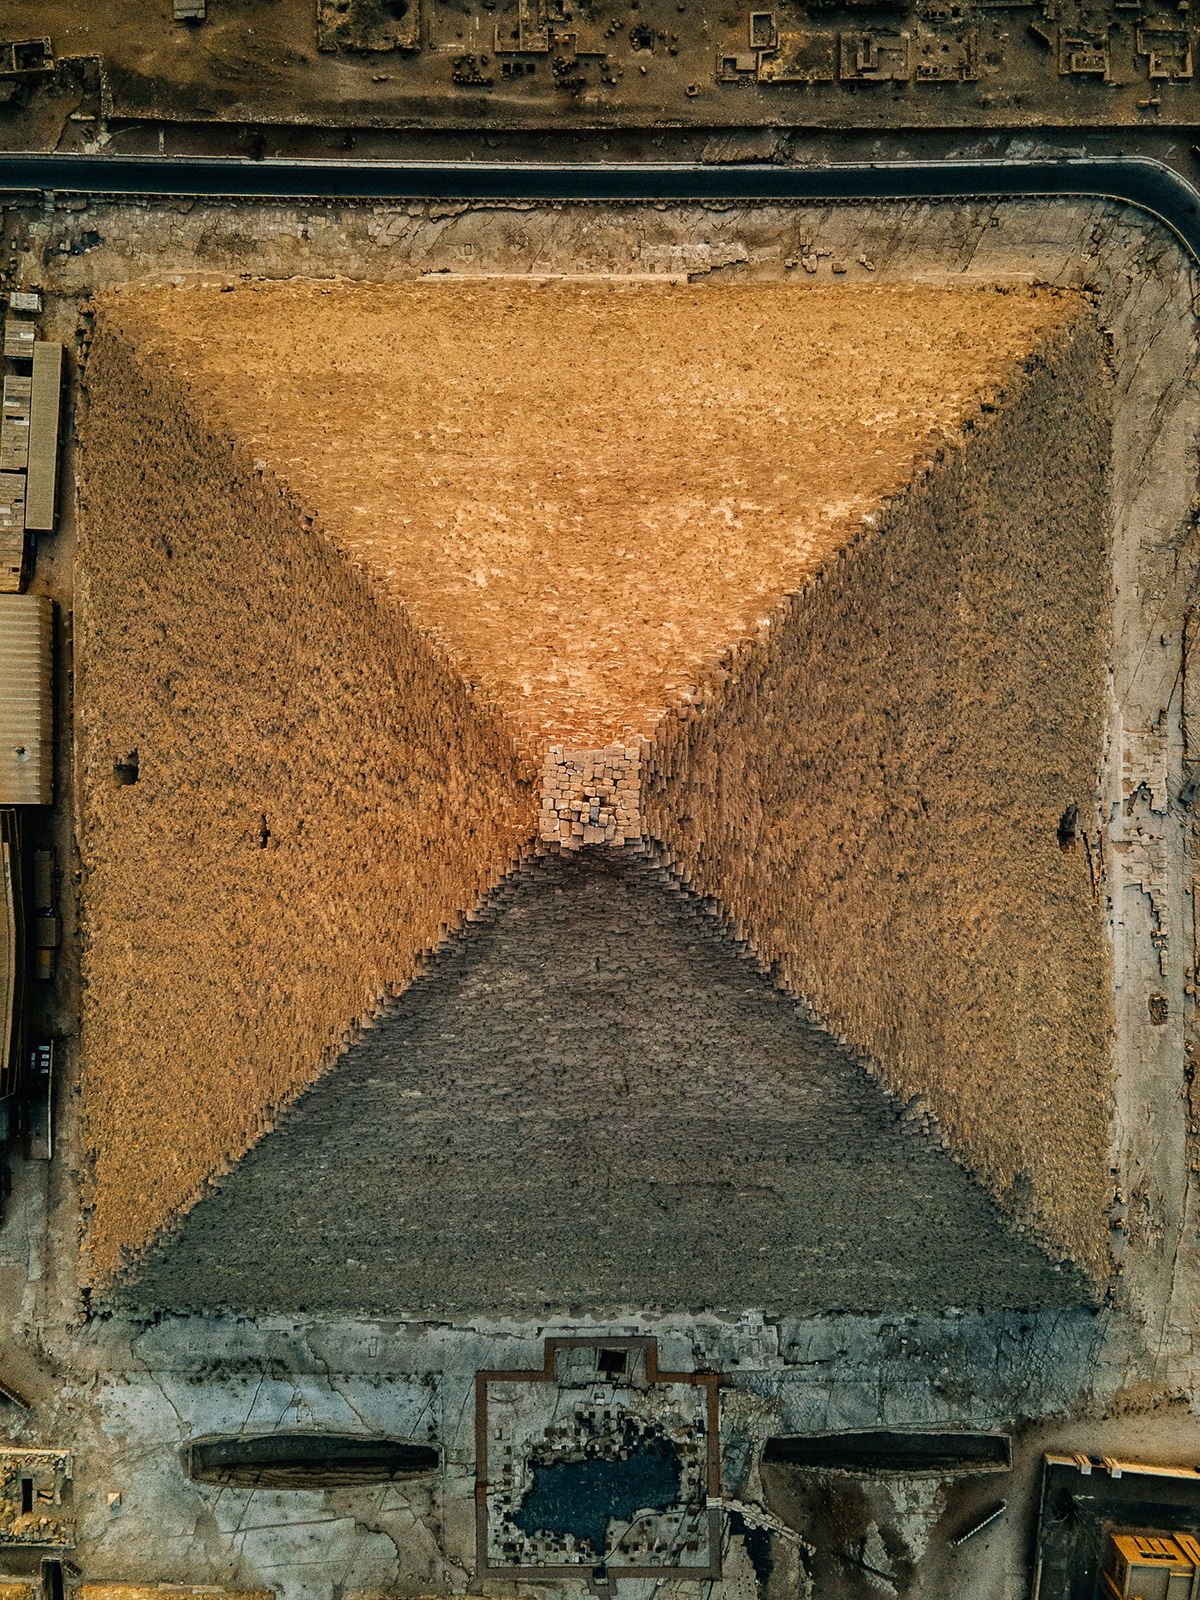 Alexander Ladanivskyy's Drone Images of Pyramids of Giza, Egypt